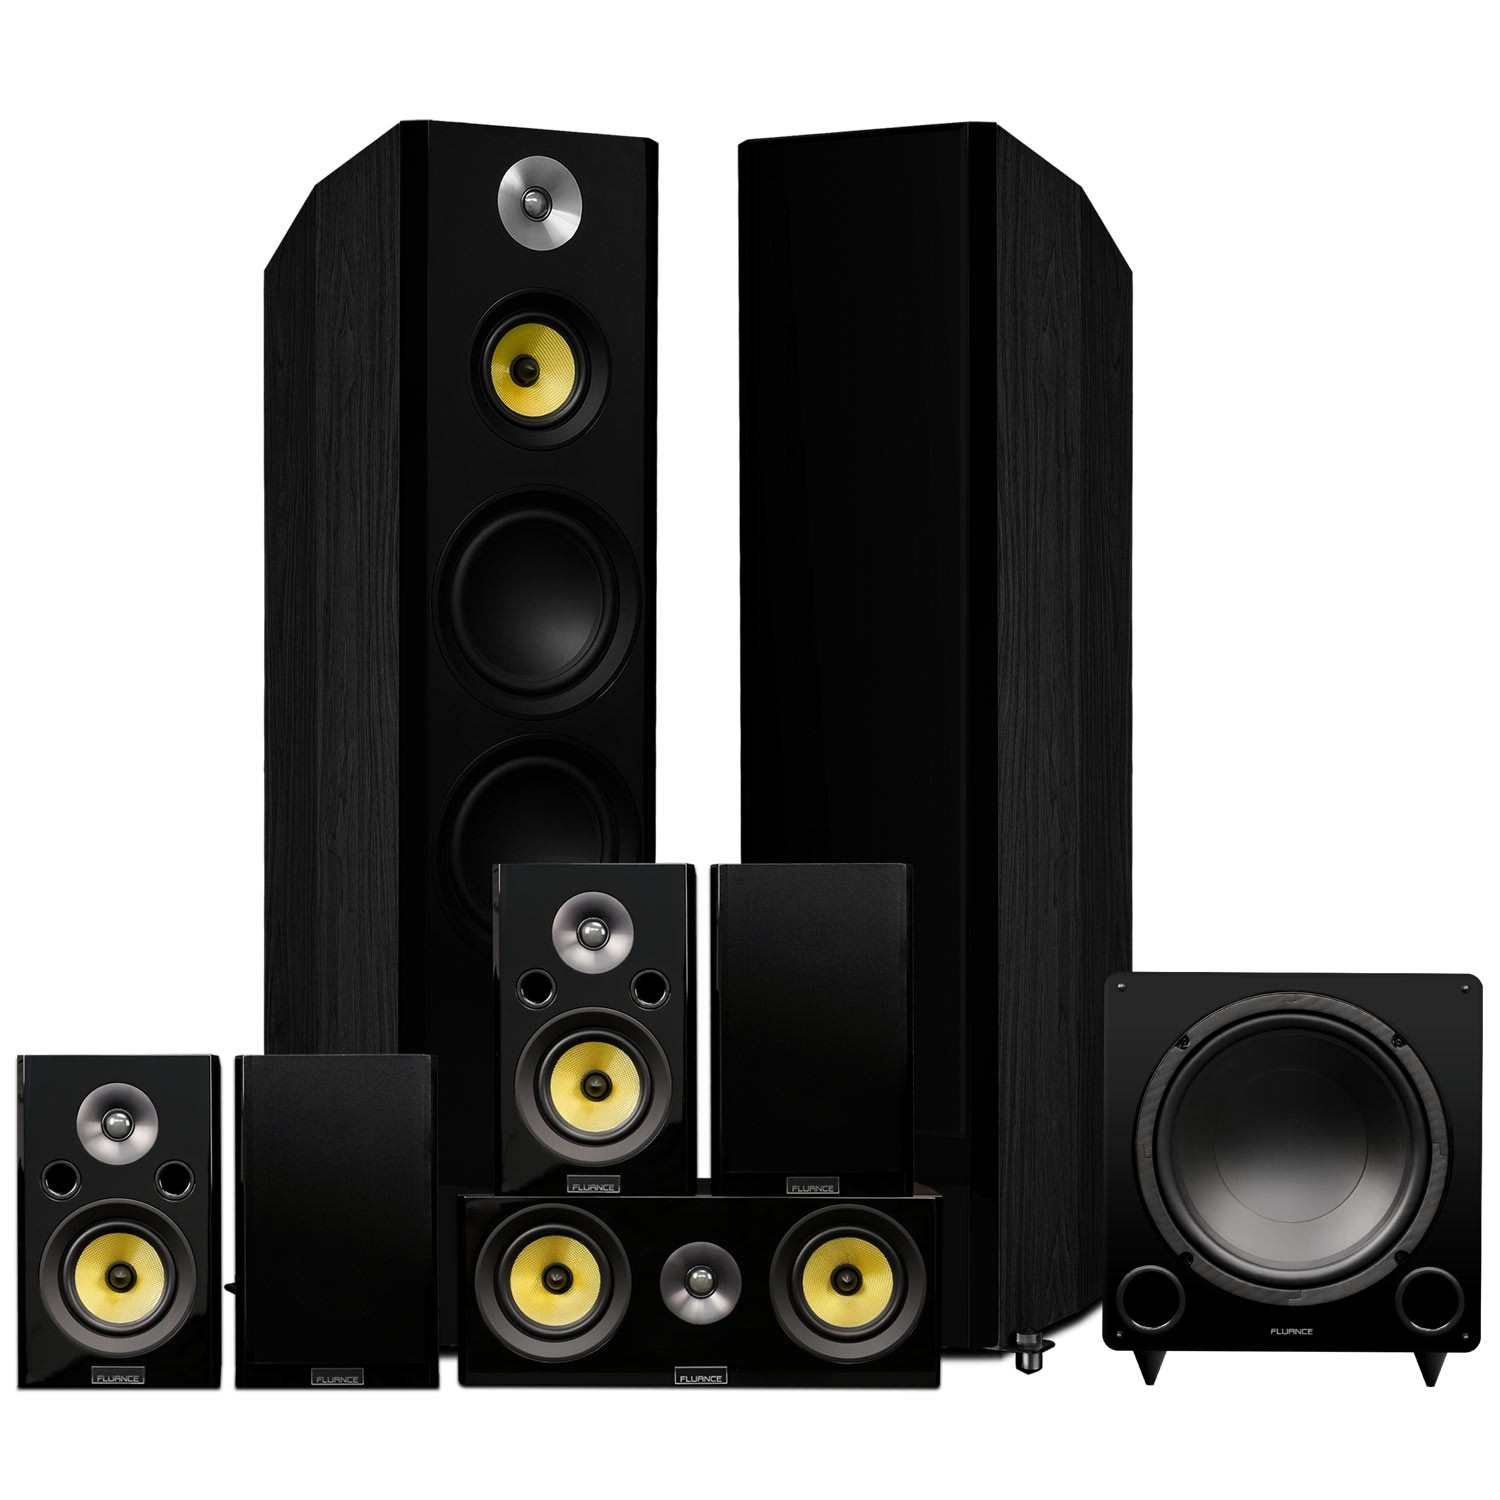 Signature Series Black Ash Surround Sound Home Theater 7.1 Channel Speaker System